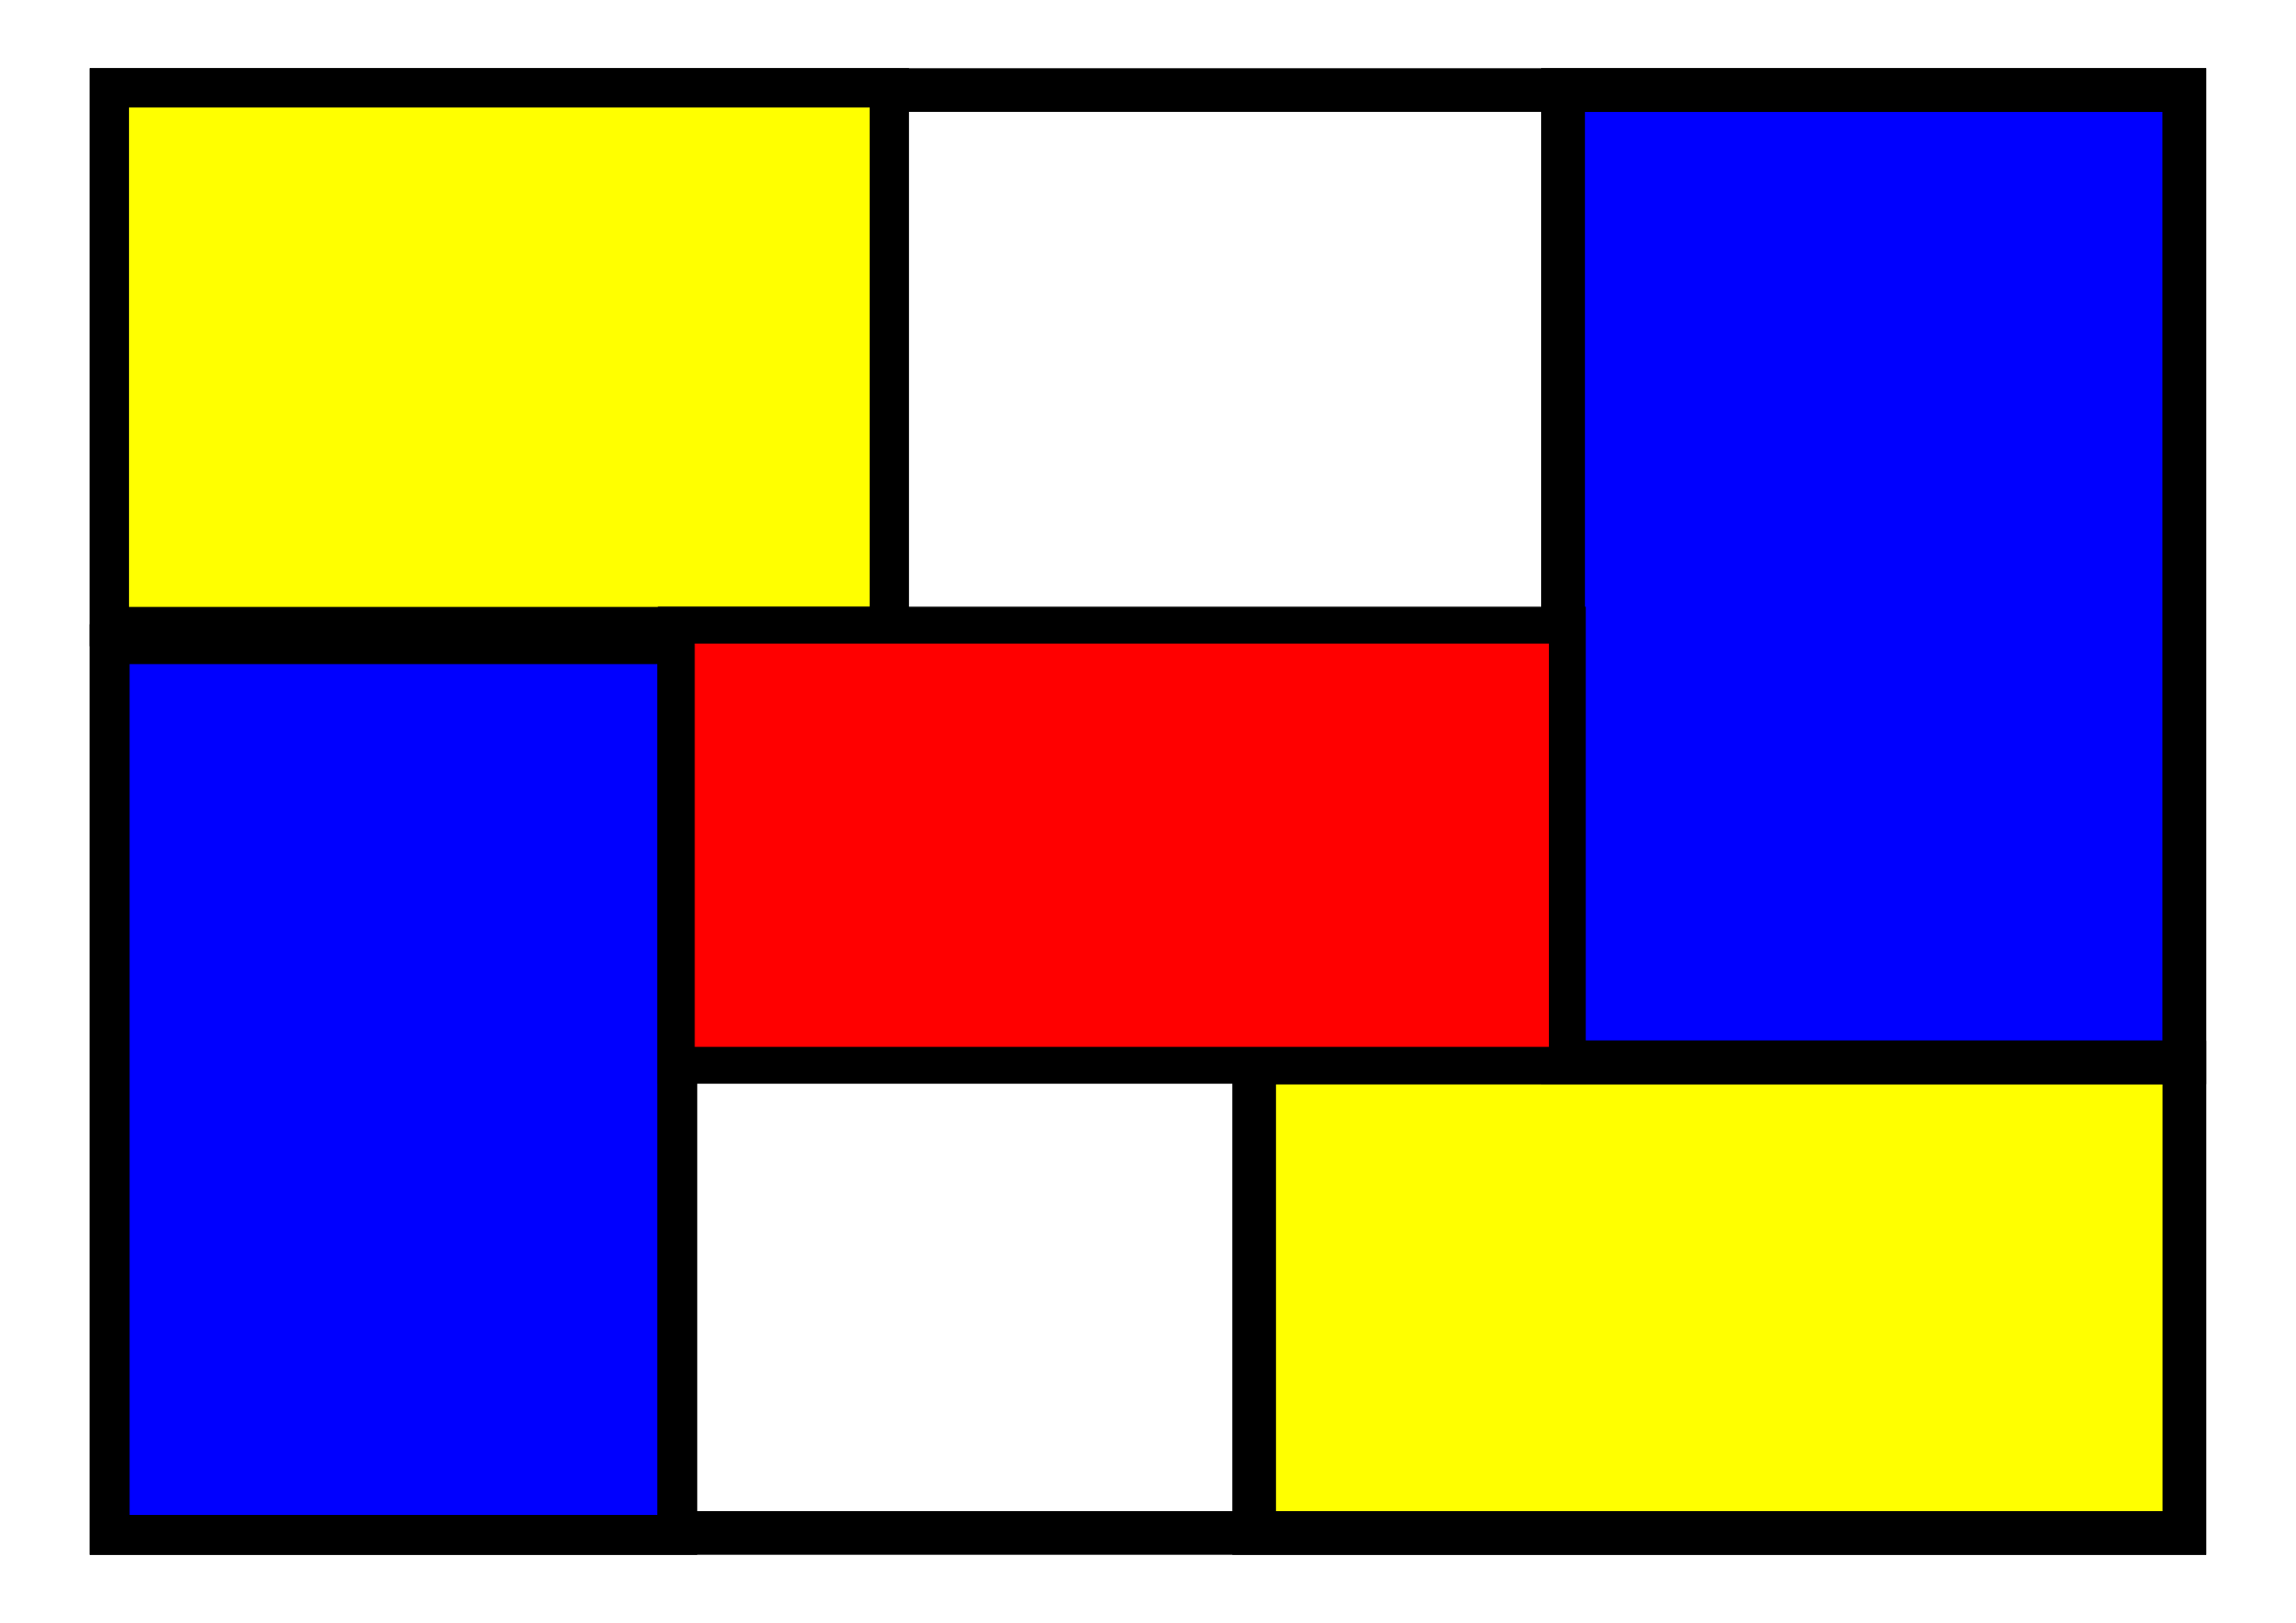 clipart mondrian clip art love you clip art lovers in bed